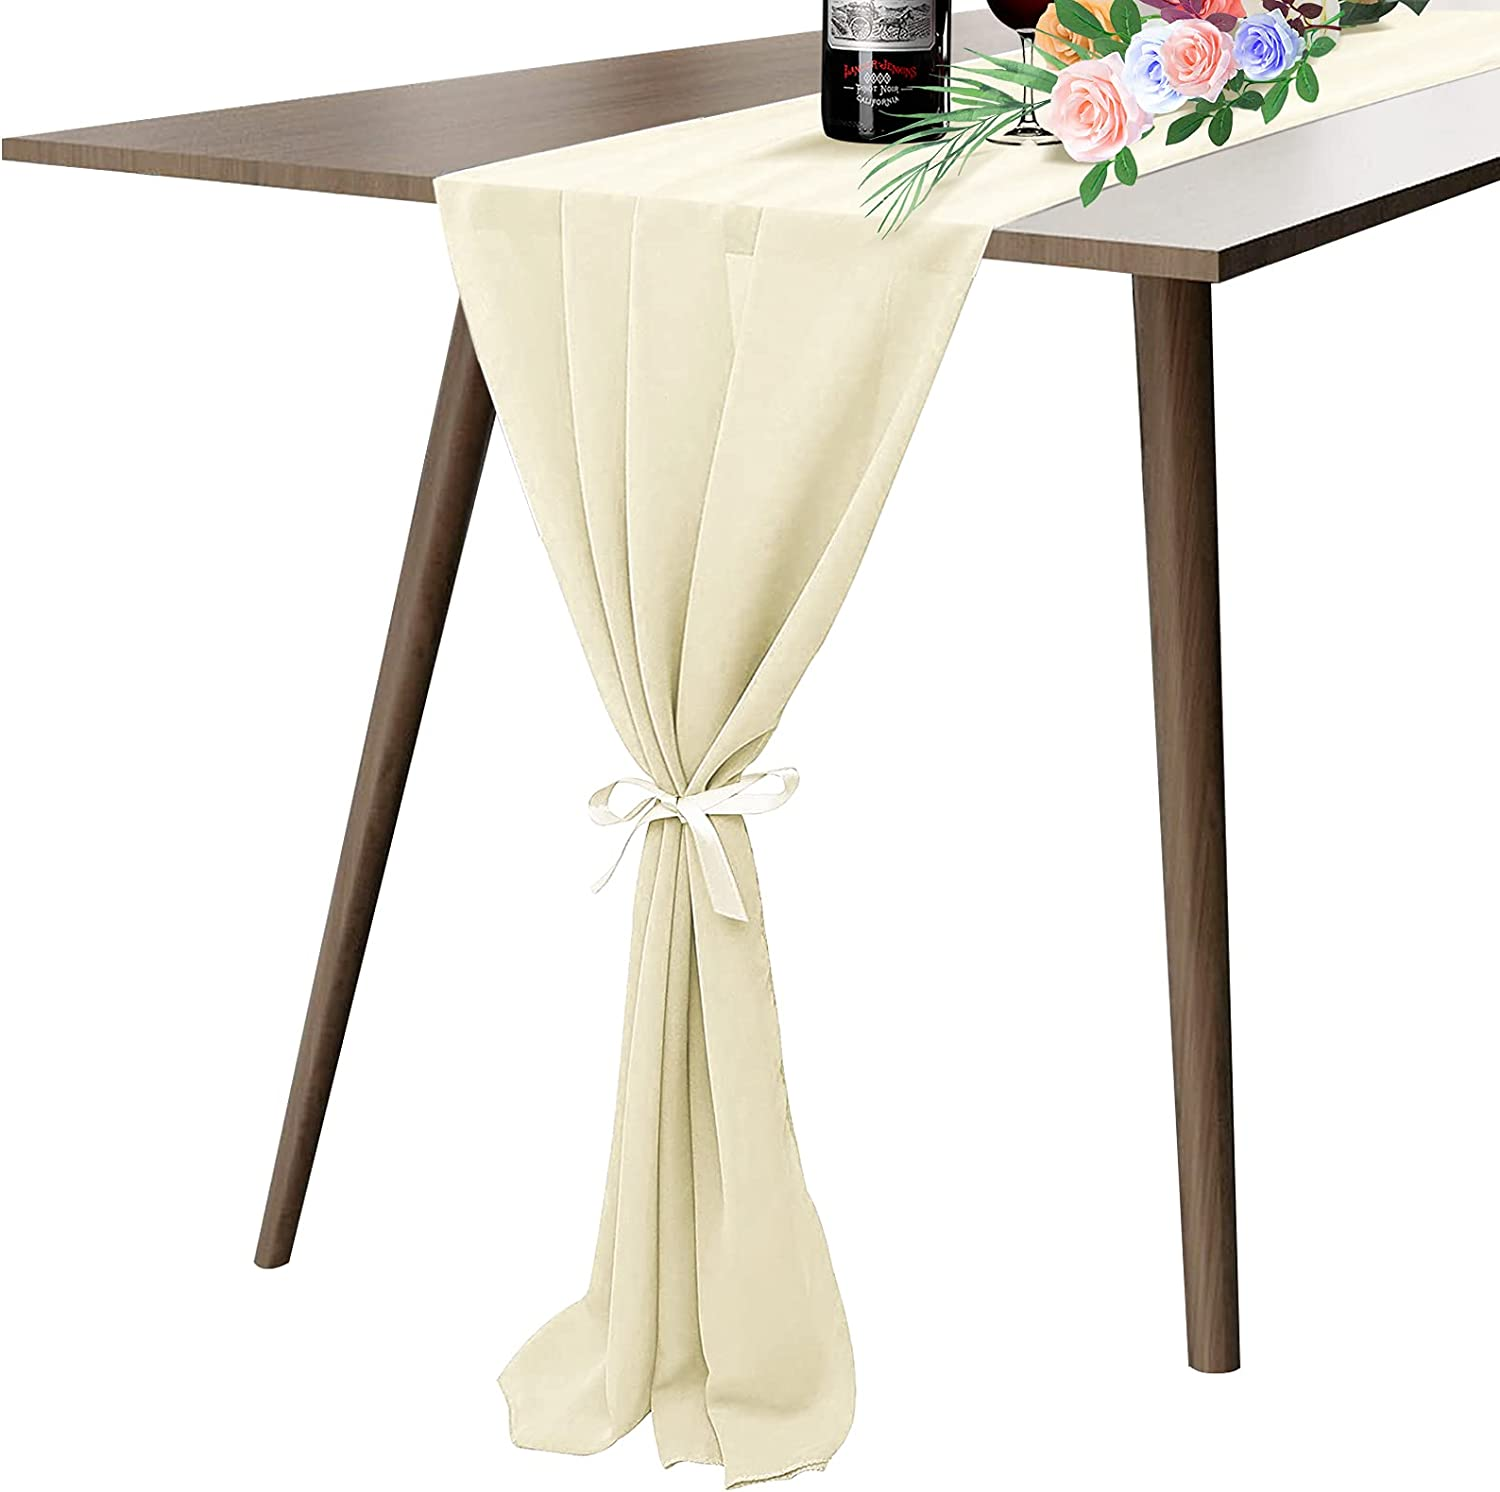 MegaJoy Table Runners 6 Packs Bargain Outlet SALE Rose Ru 27X120 Inches Dusty